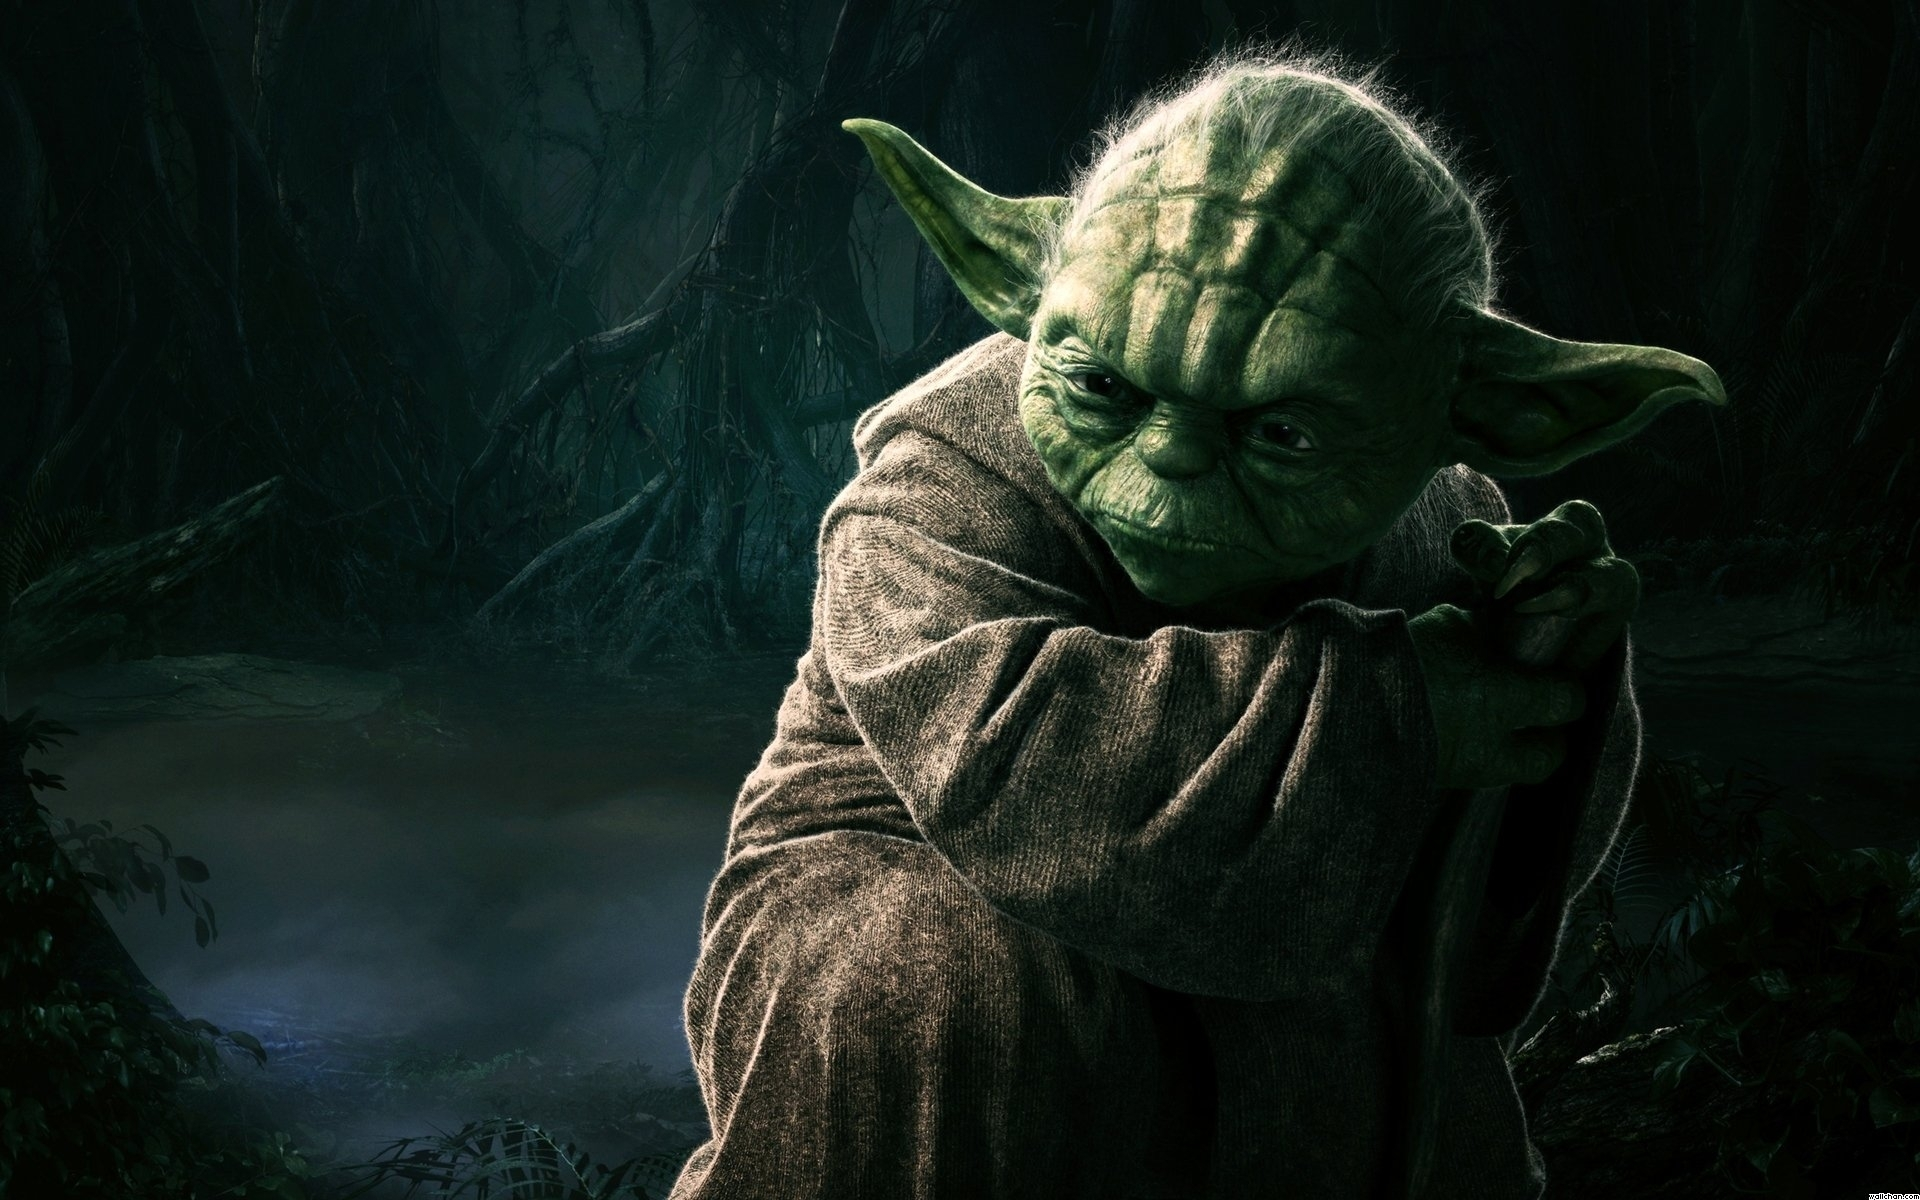 82 yoda hd wallpapers | background images - wallpaper abyss